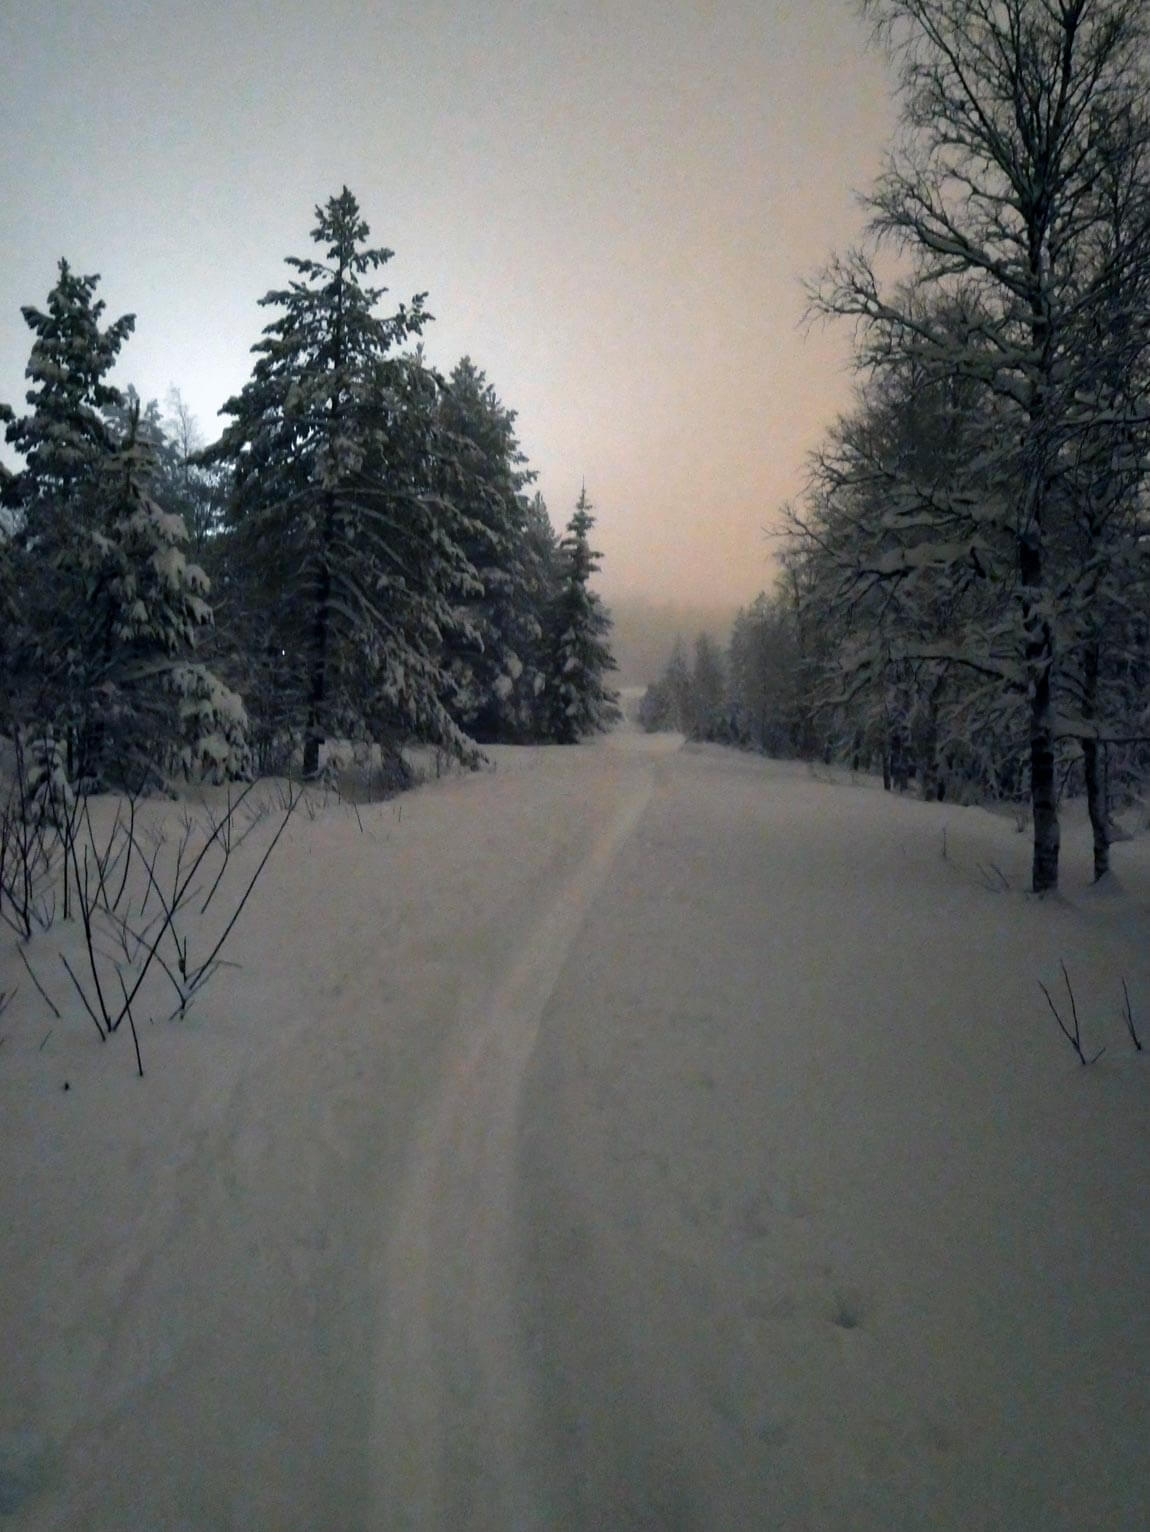 The path into the snowy woods after dark. Sälen, Dalarna county, Sweden.